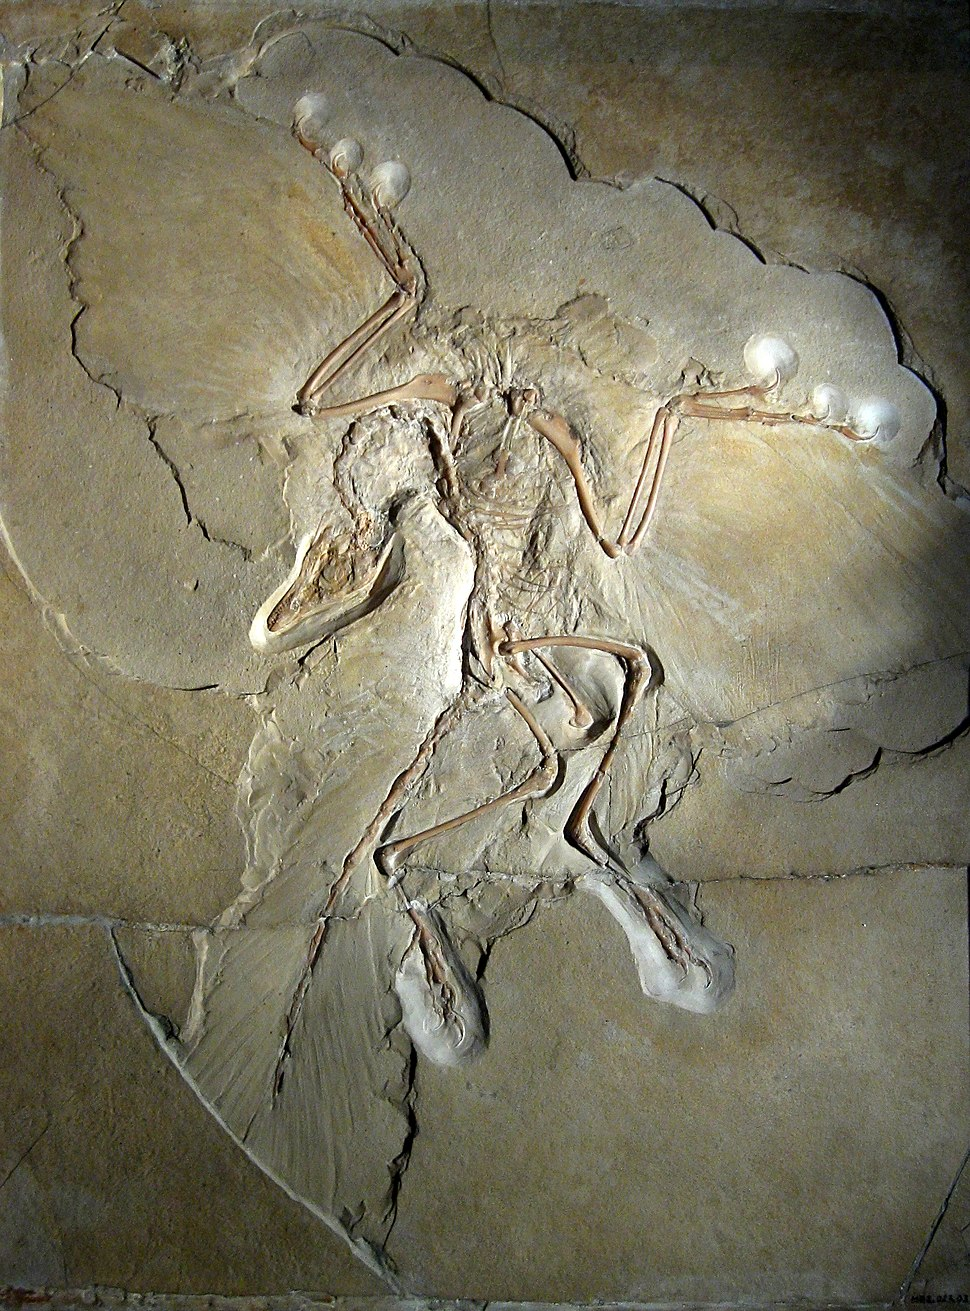 Archaeopteryx lithographica (Berlin specimen)